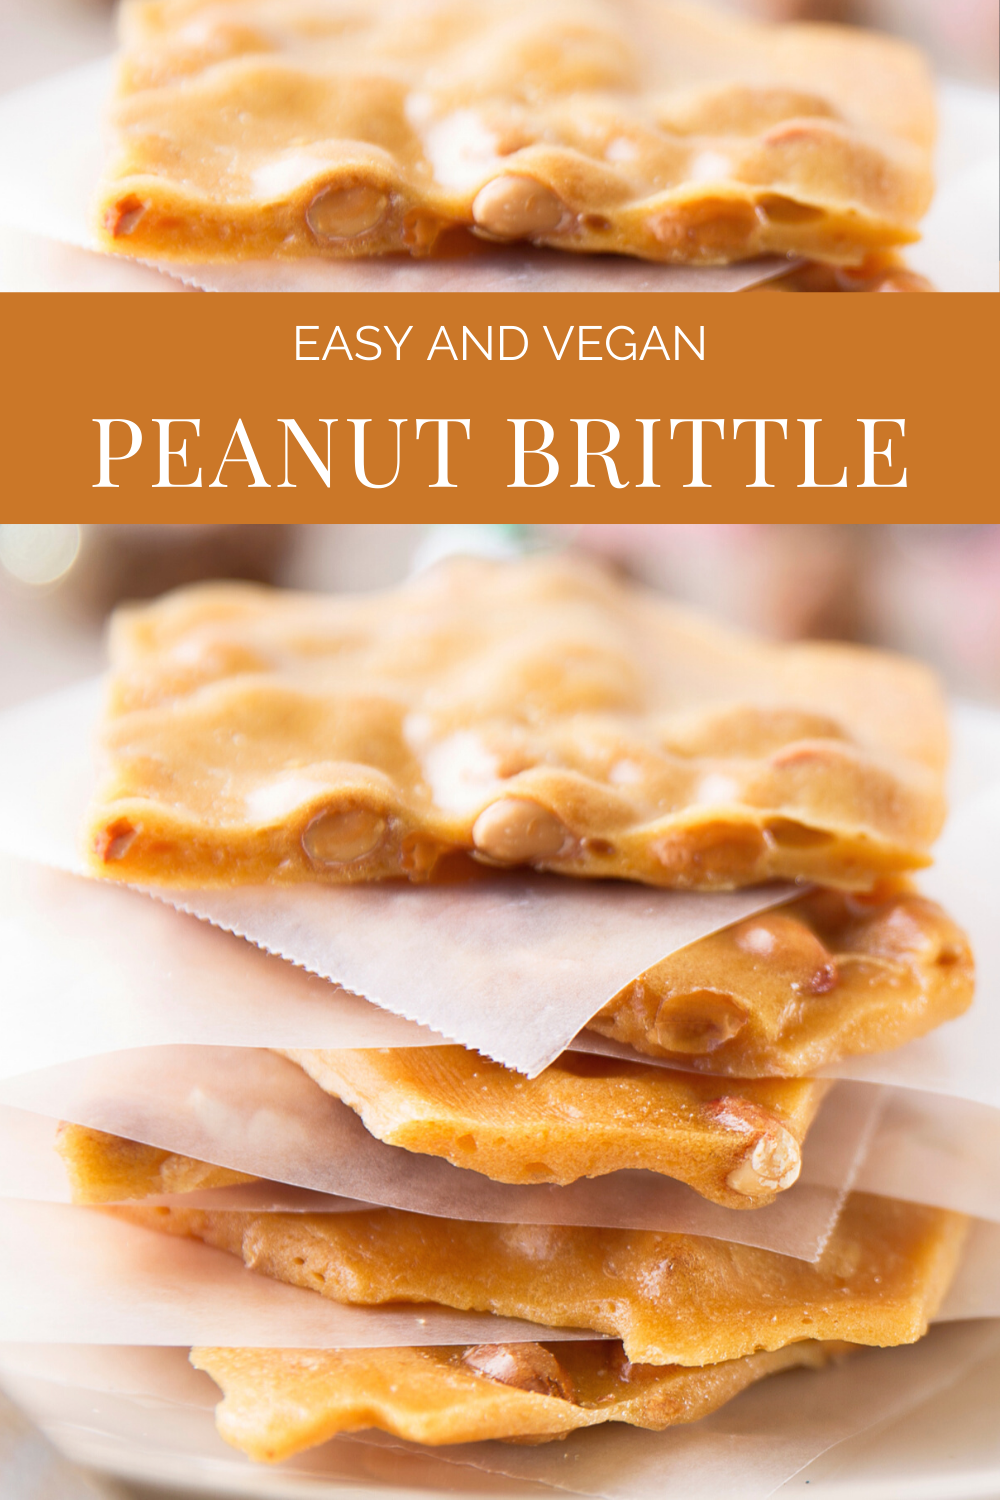 Traditional Vegan Peanut Brittle - This classic holiday candy is easy to make and does not require refrigeration making it perfect for gifting! #vegancandyrecipe #easypeanutbrittle #veganchristmascandy via @thiswifecooks